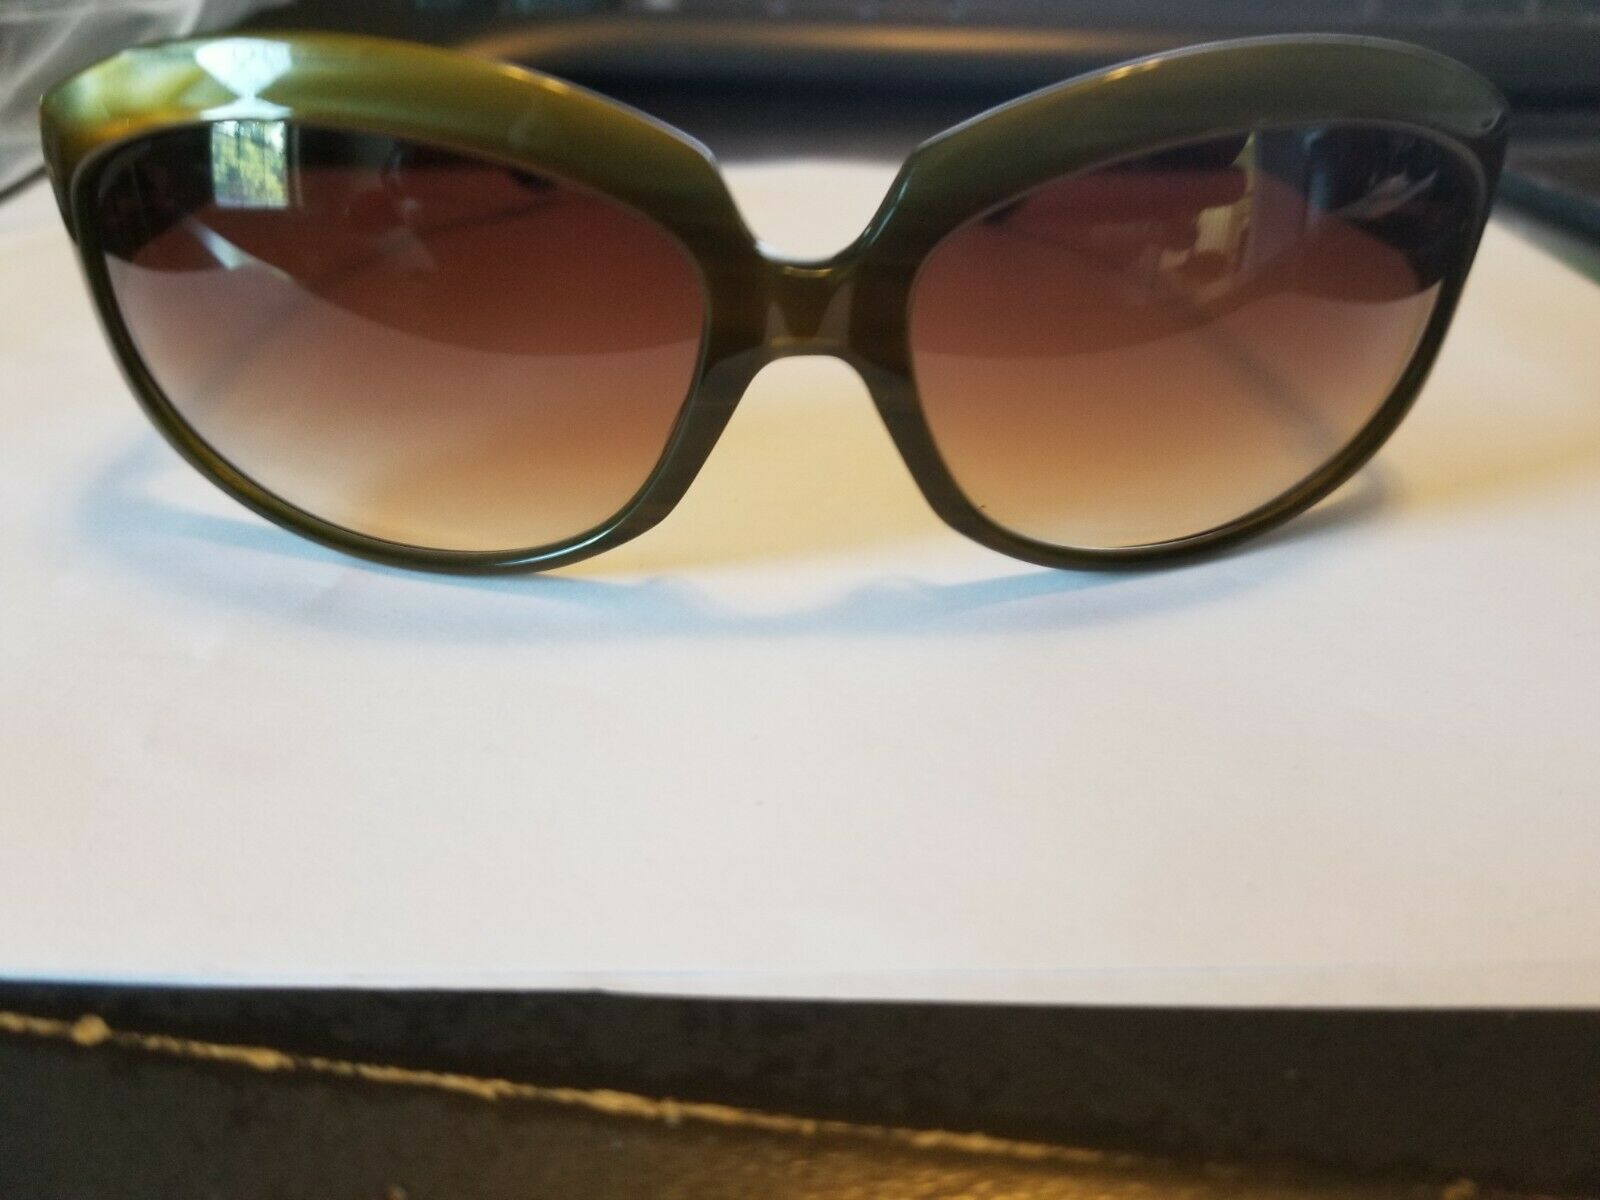 Oliver Peoples sunglasses 63-17-120 La Donna JA Green 8770..BRAND NEW AUTHENTIC image 1